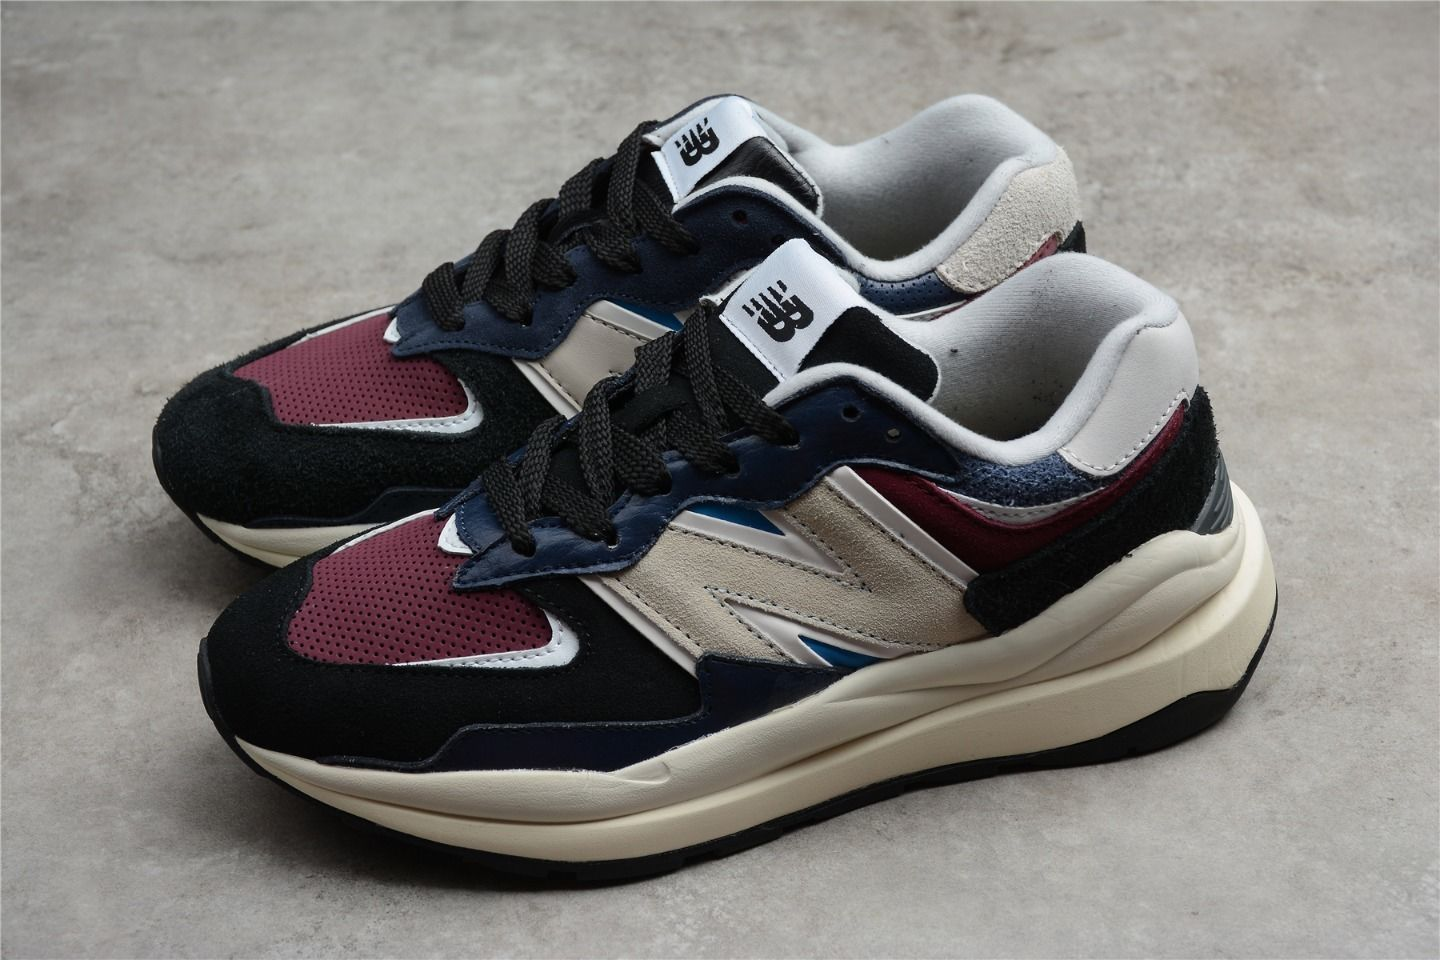 New Balance M5740TB jogging shoes overall